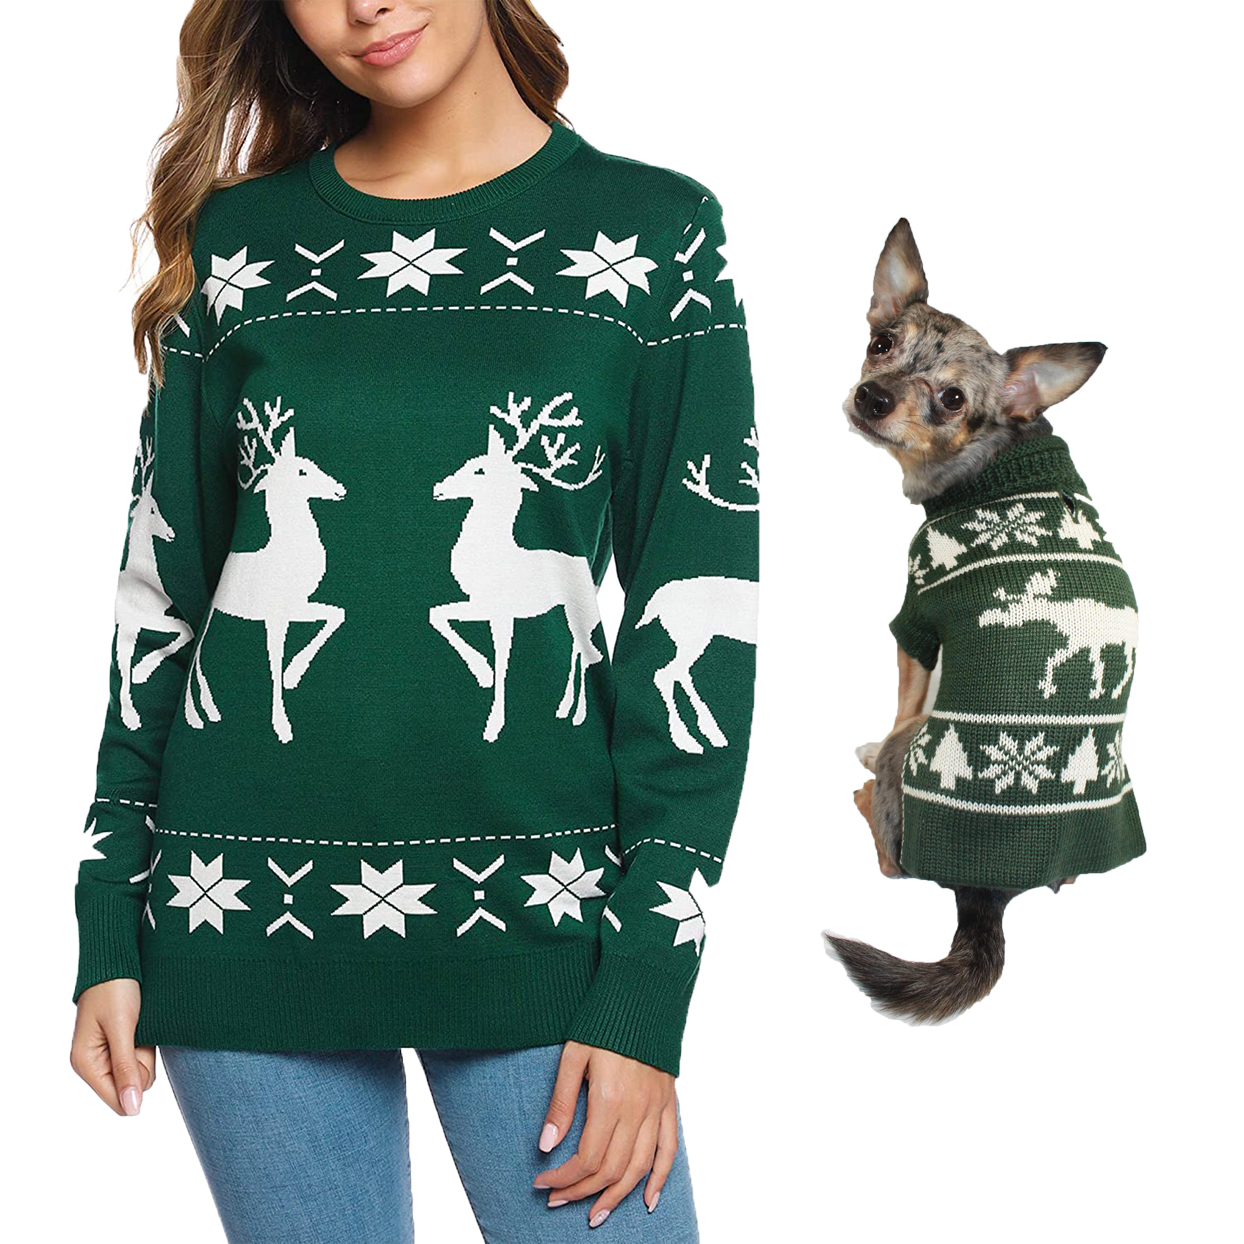 green-reindeer-matching-sweaters